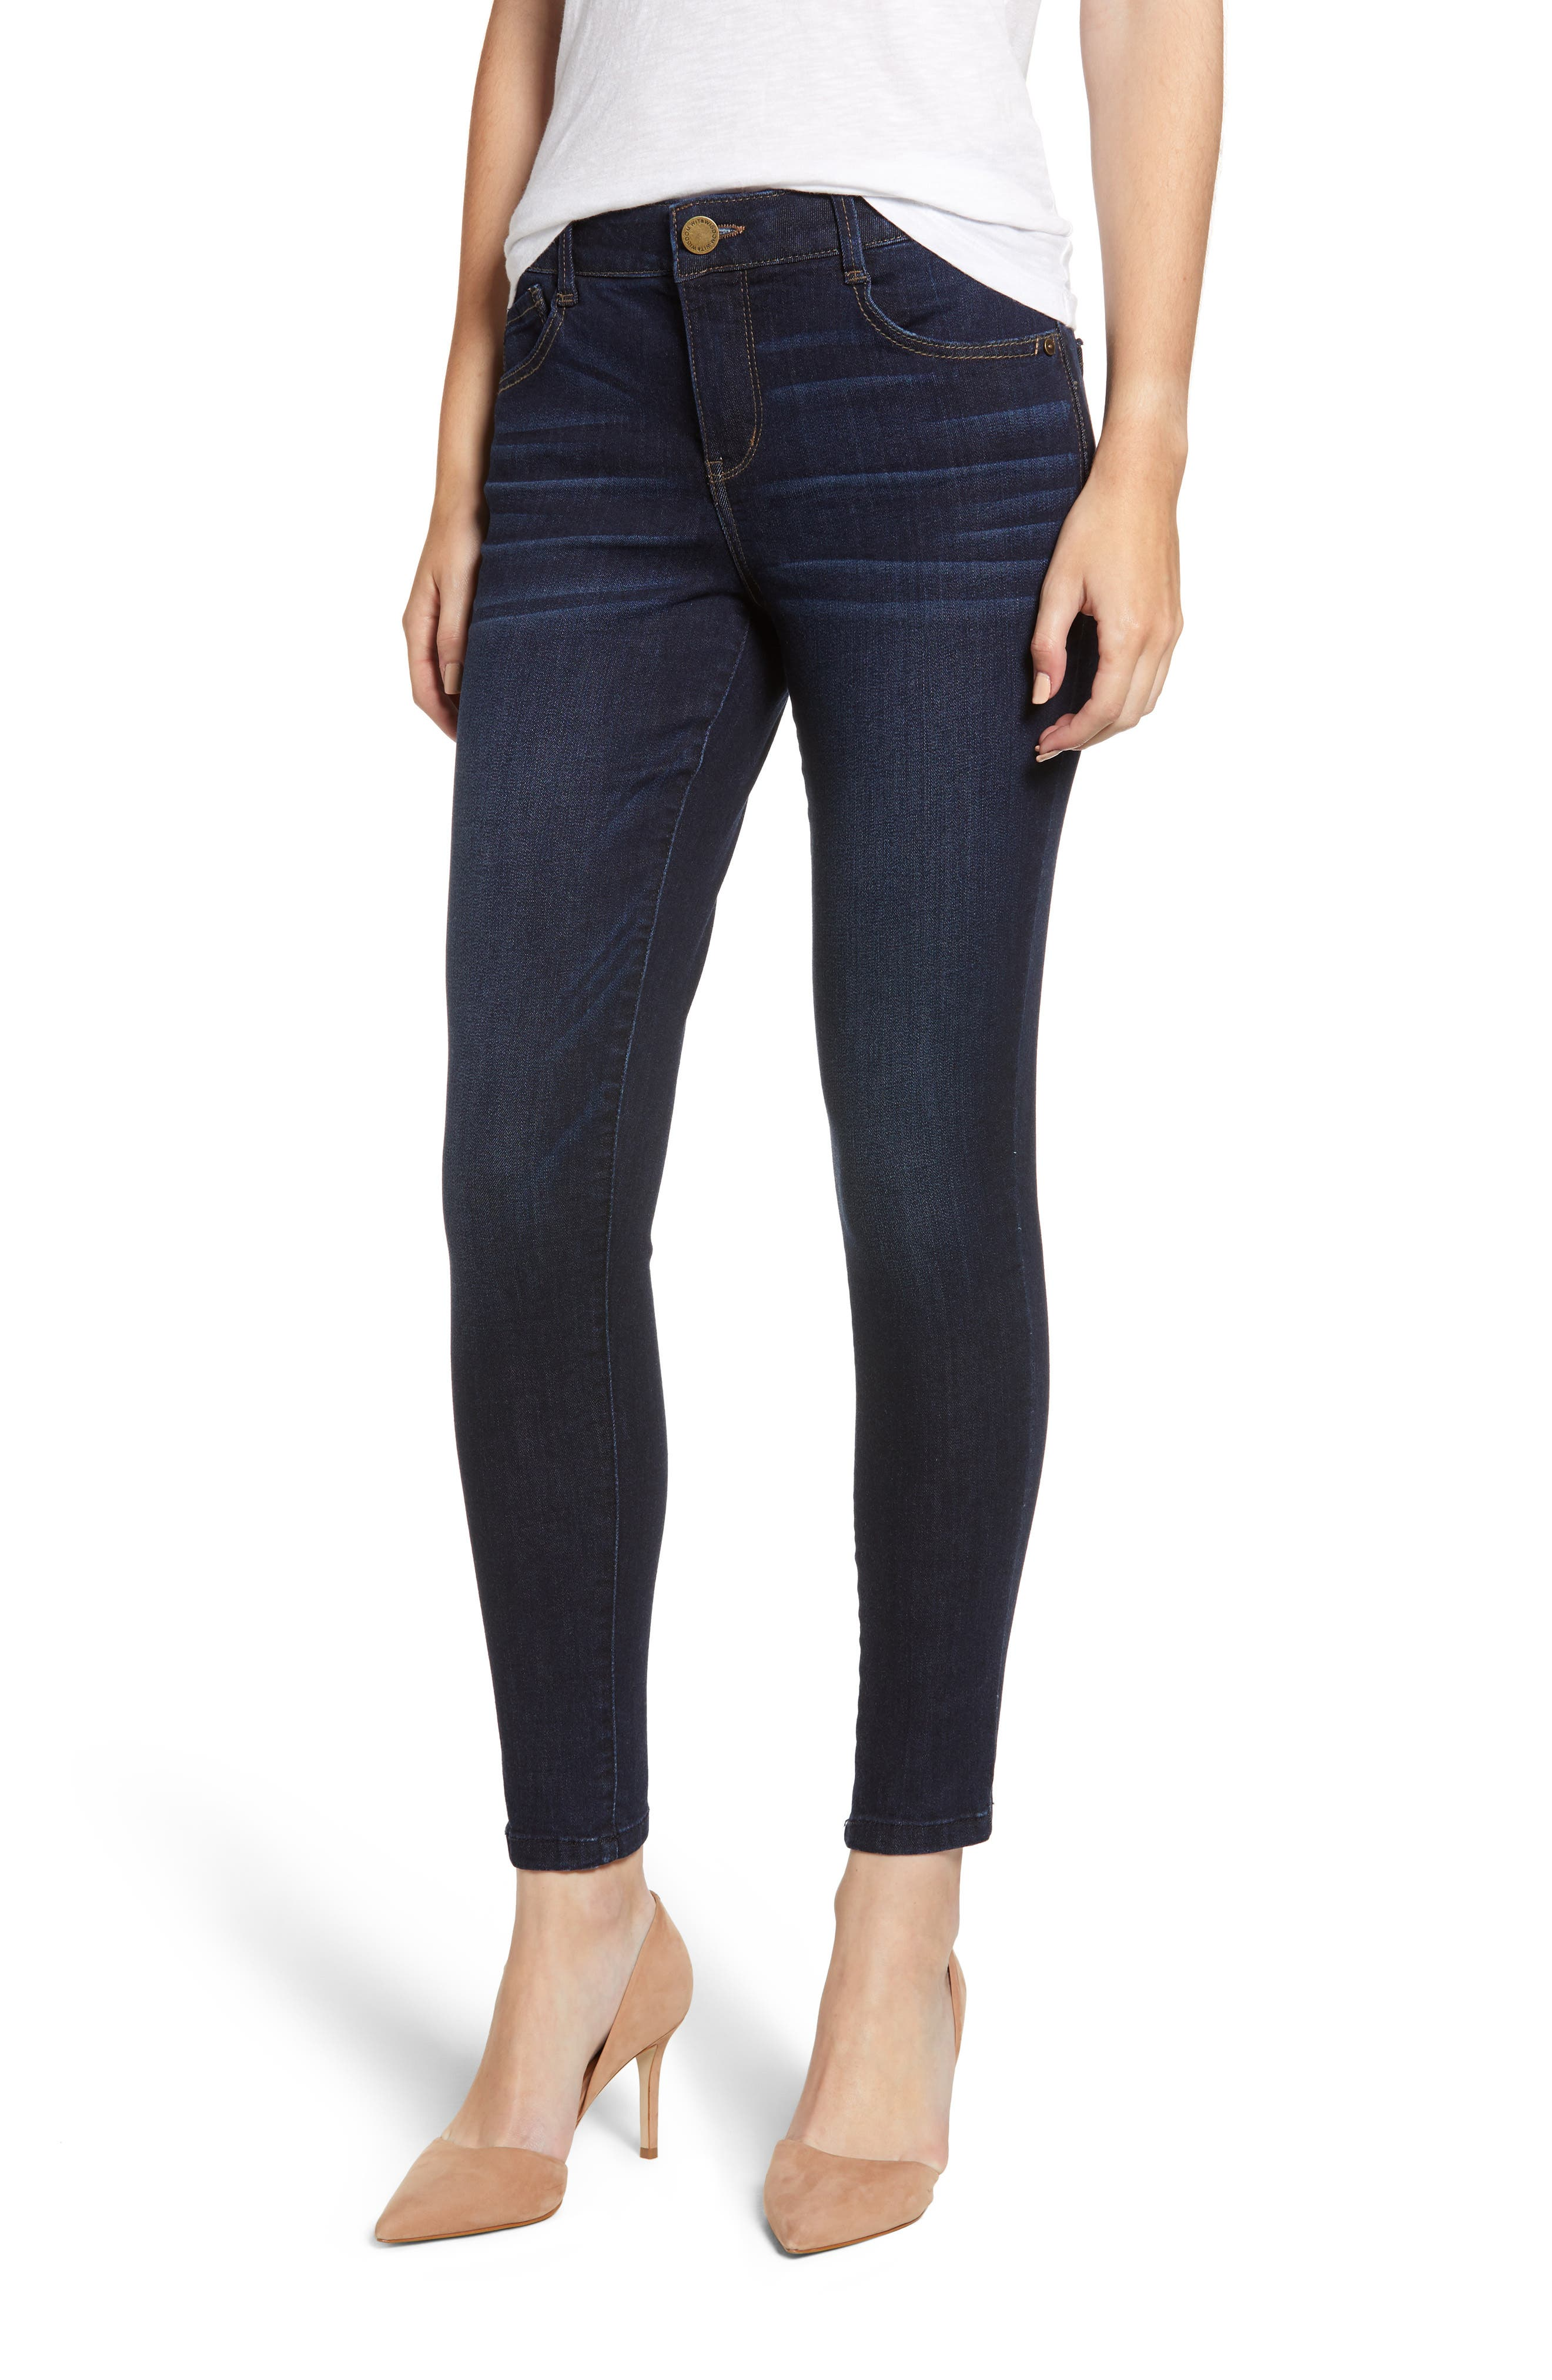 Ab-solution High Waist Modern Skinny Ankle Jeans,                         Main,                         color, IN- INDIGO